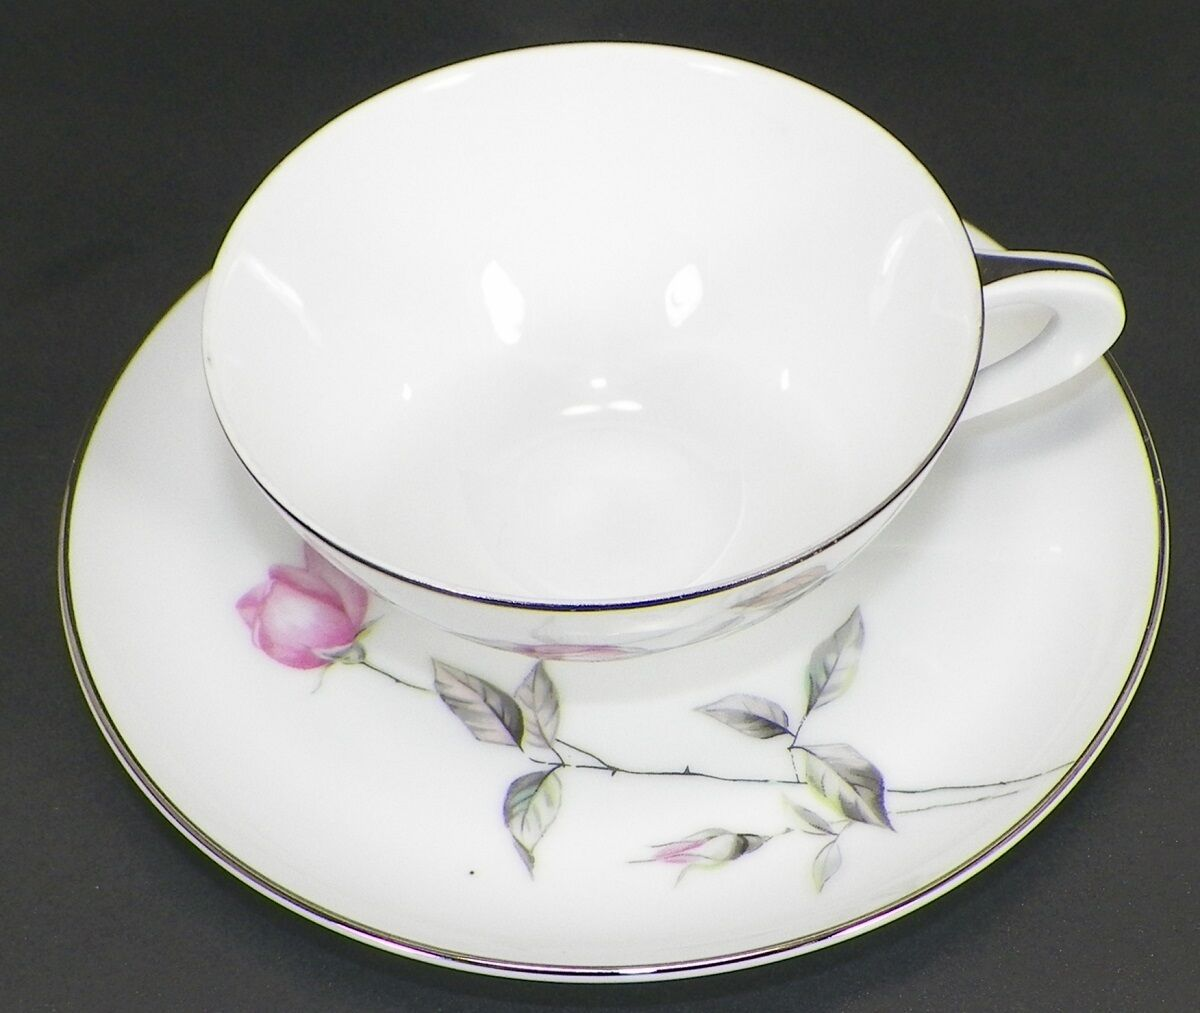 SANGO JAPAN FLAT CUP AND SAUCER SET FINE CHINA DAWN ROSE PATTERN -F10